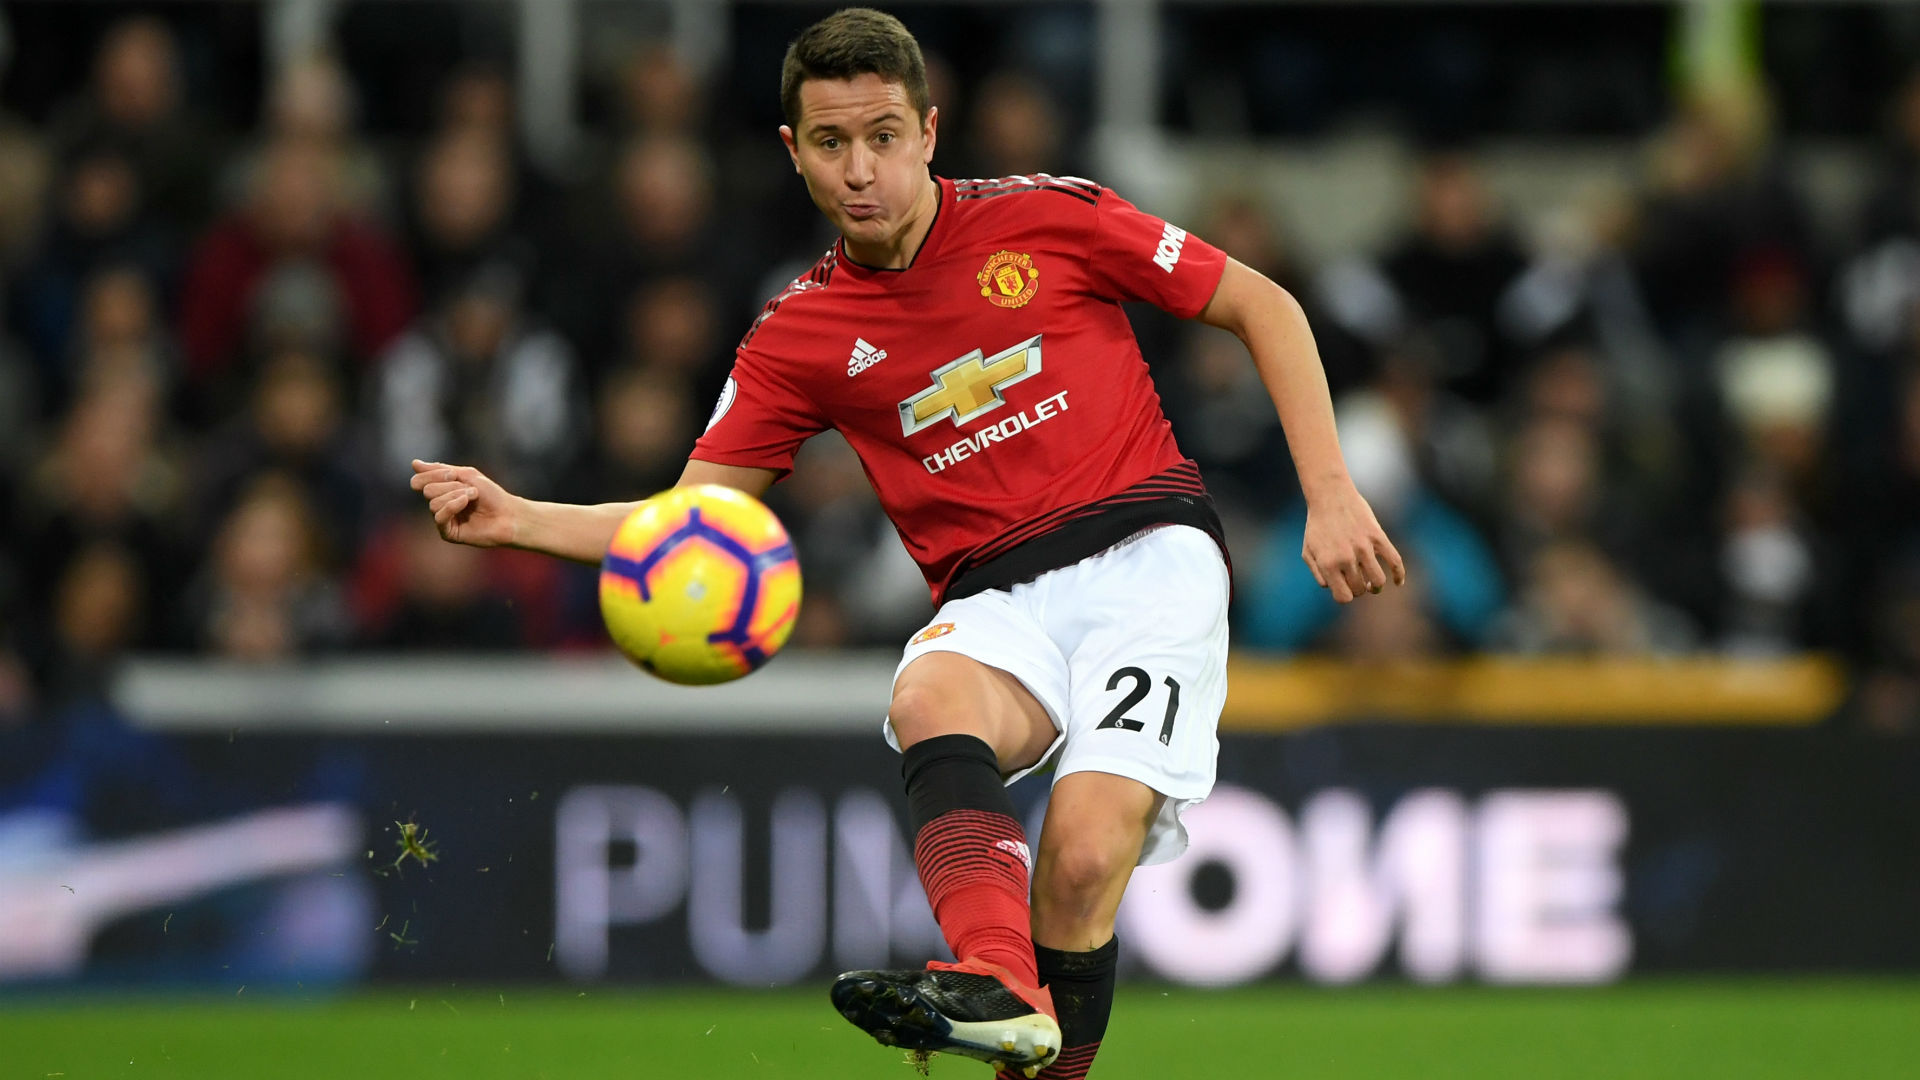 Herrera: Solskjaer the right man - but he needs time